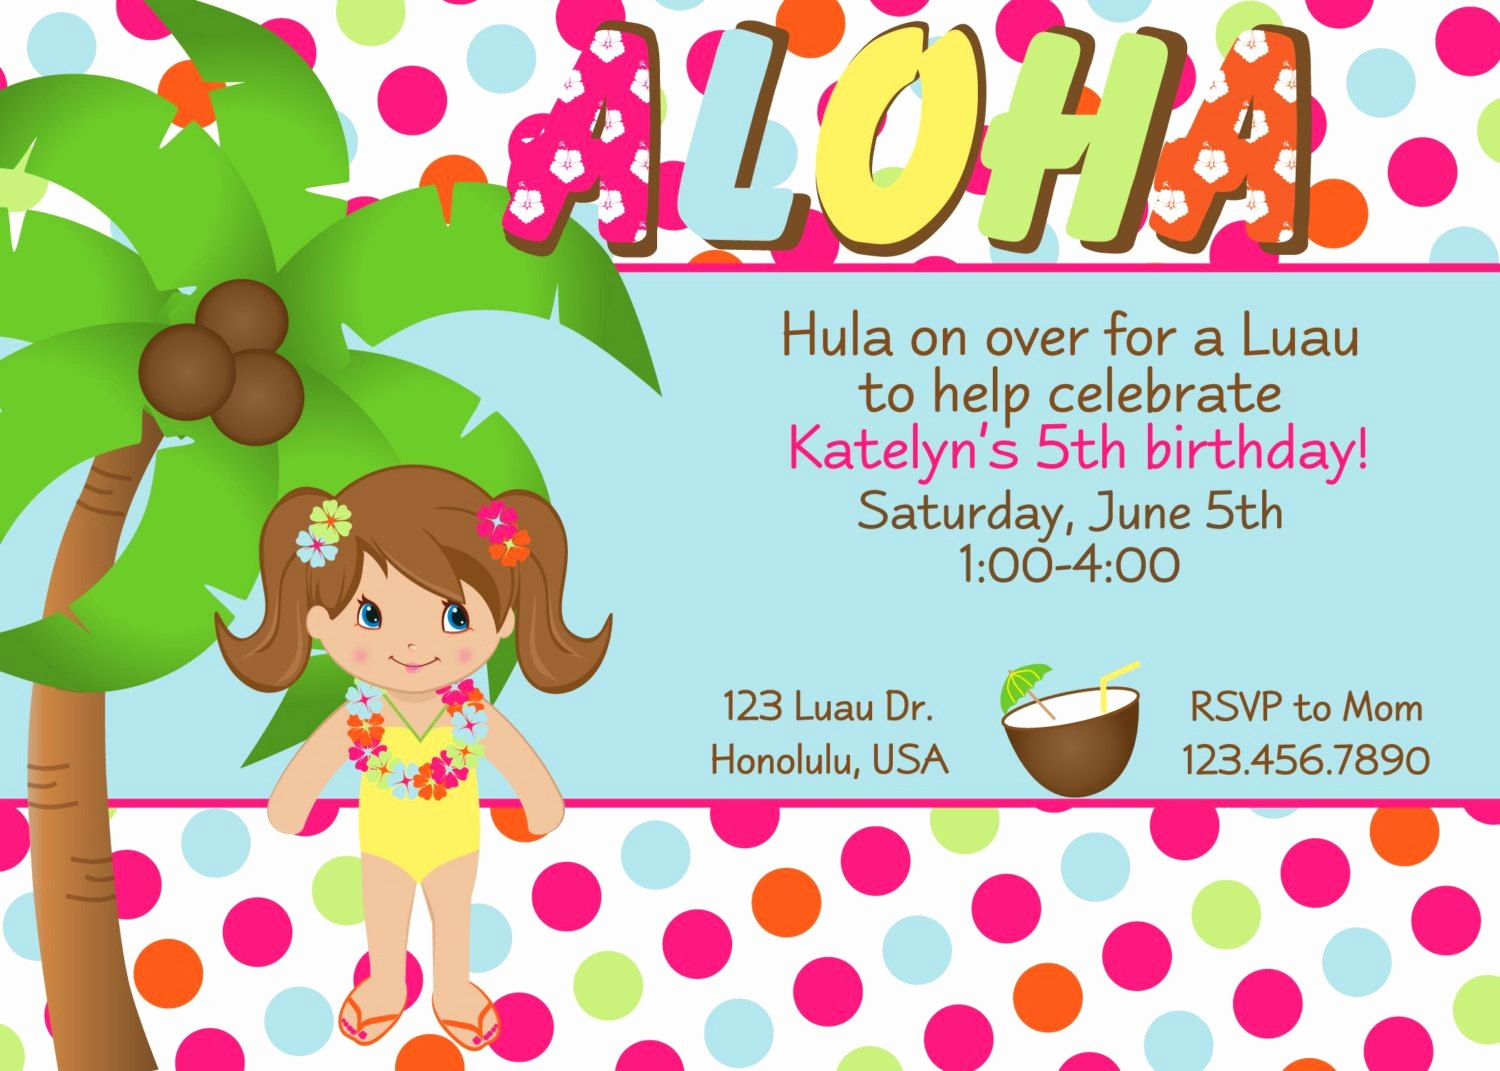 Hawaiian theme Party Invitations Printable Lovely Others Custom Luau Invitations for Your Tropical Getaway